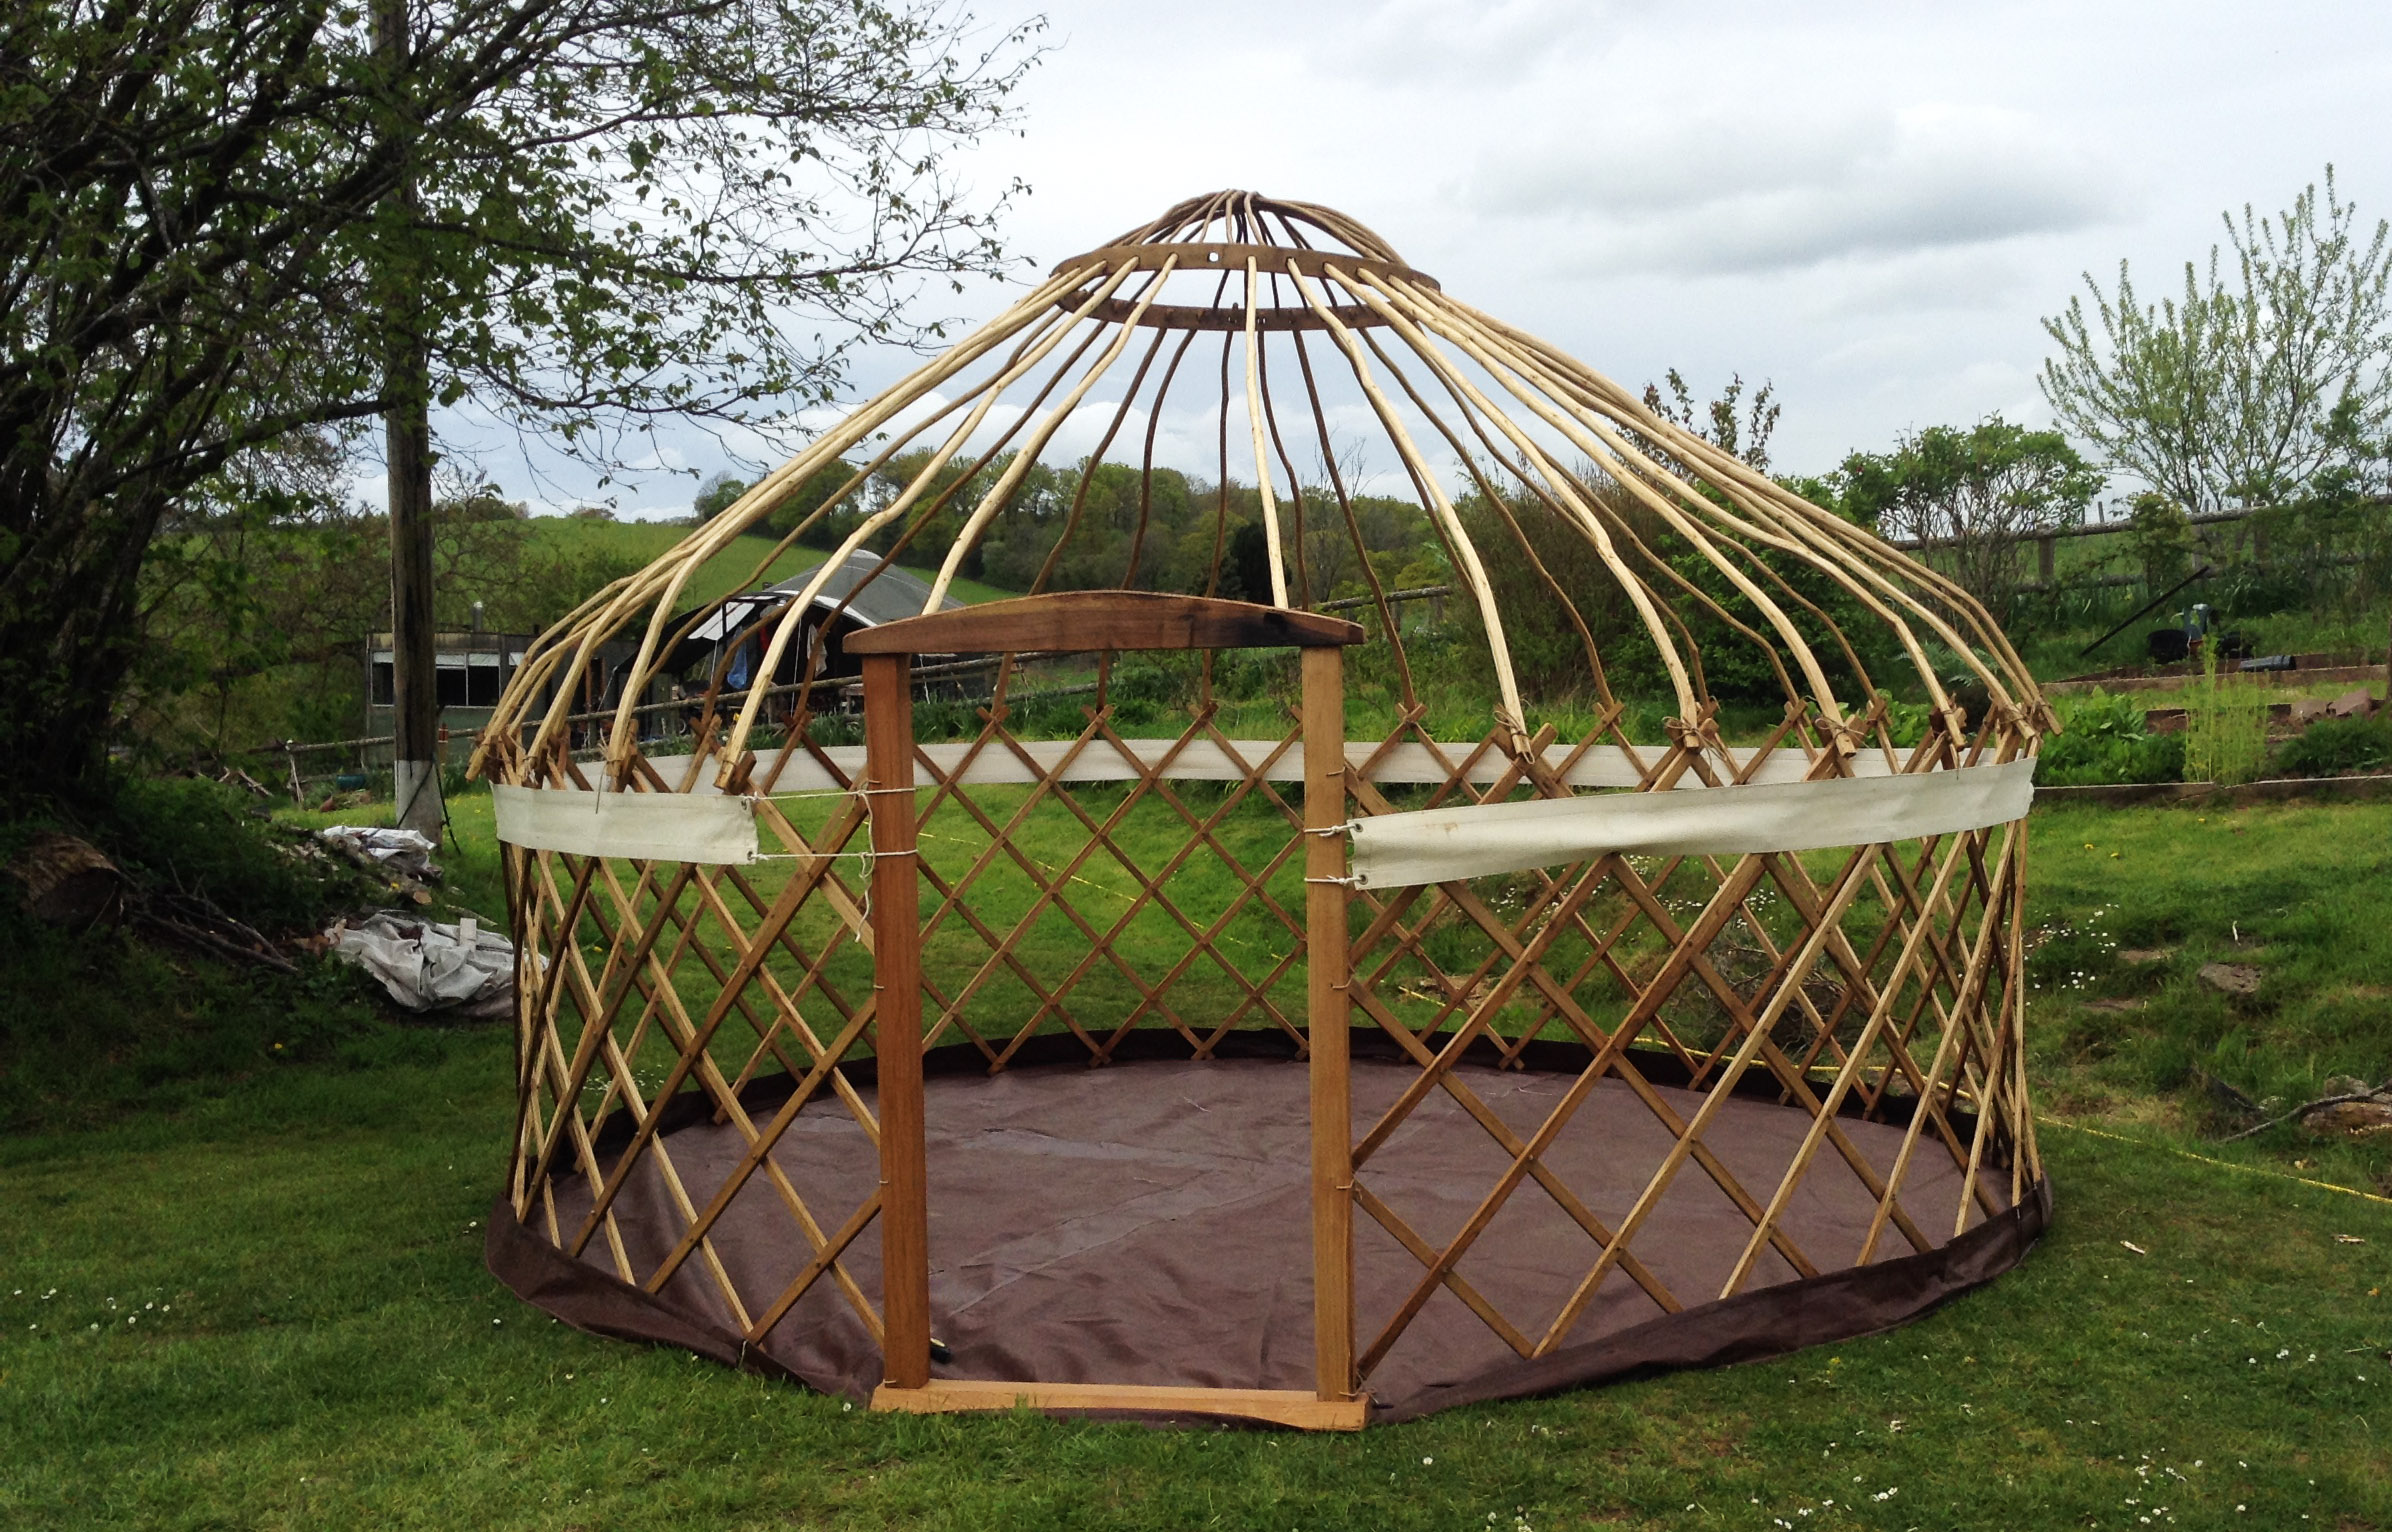 14ft chestnut and ash yurt frame ready for canvas.